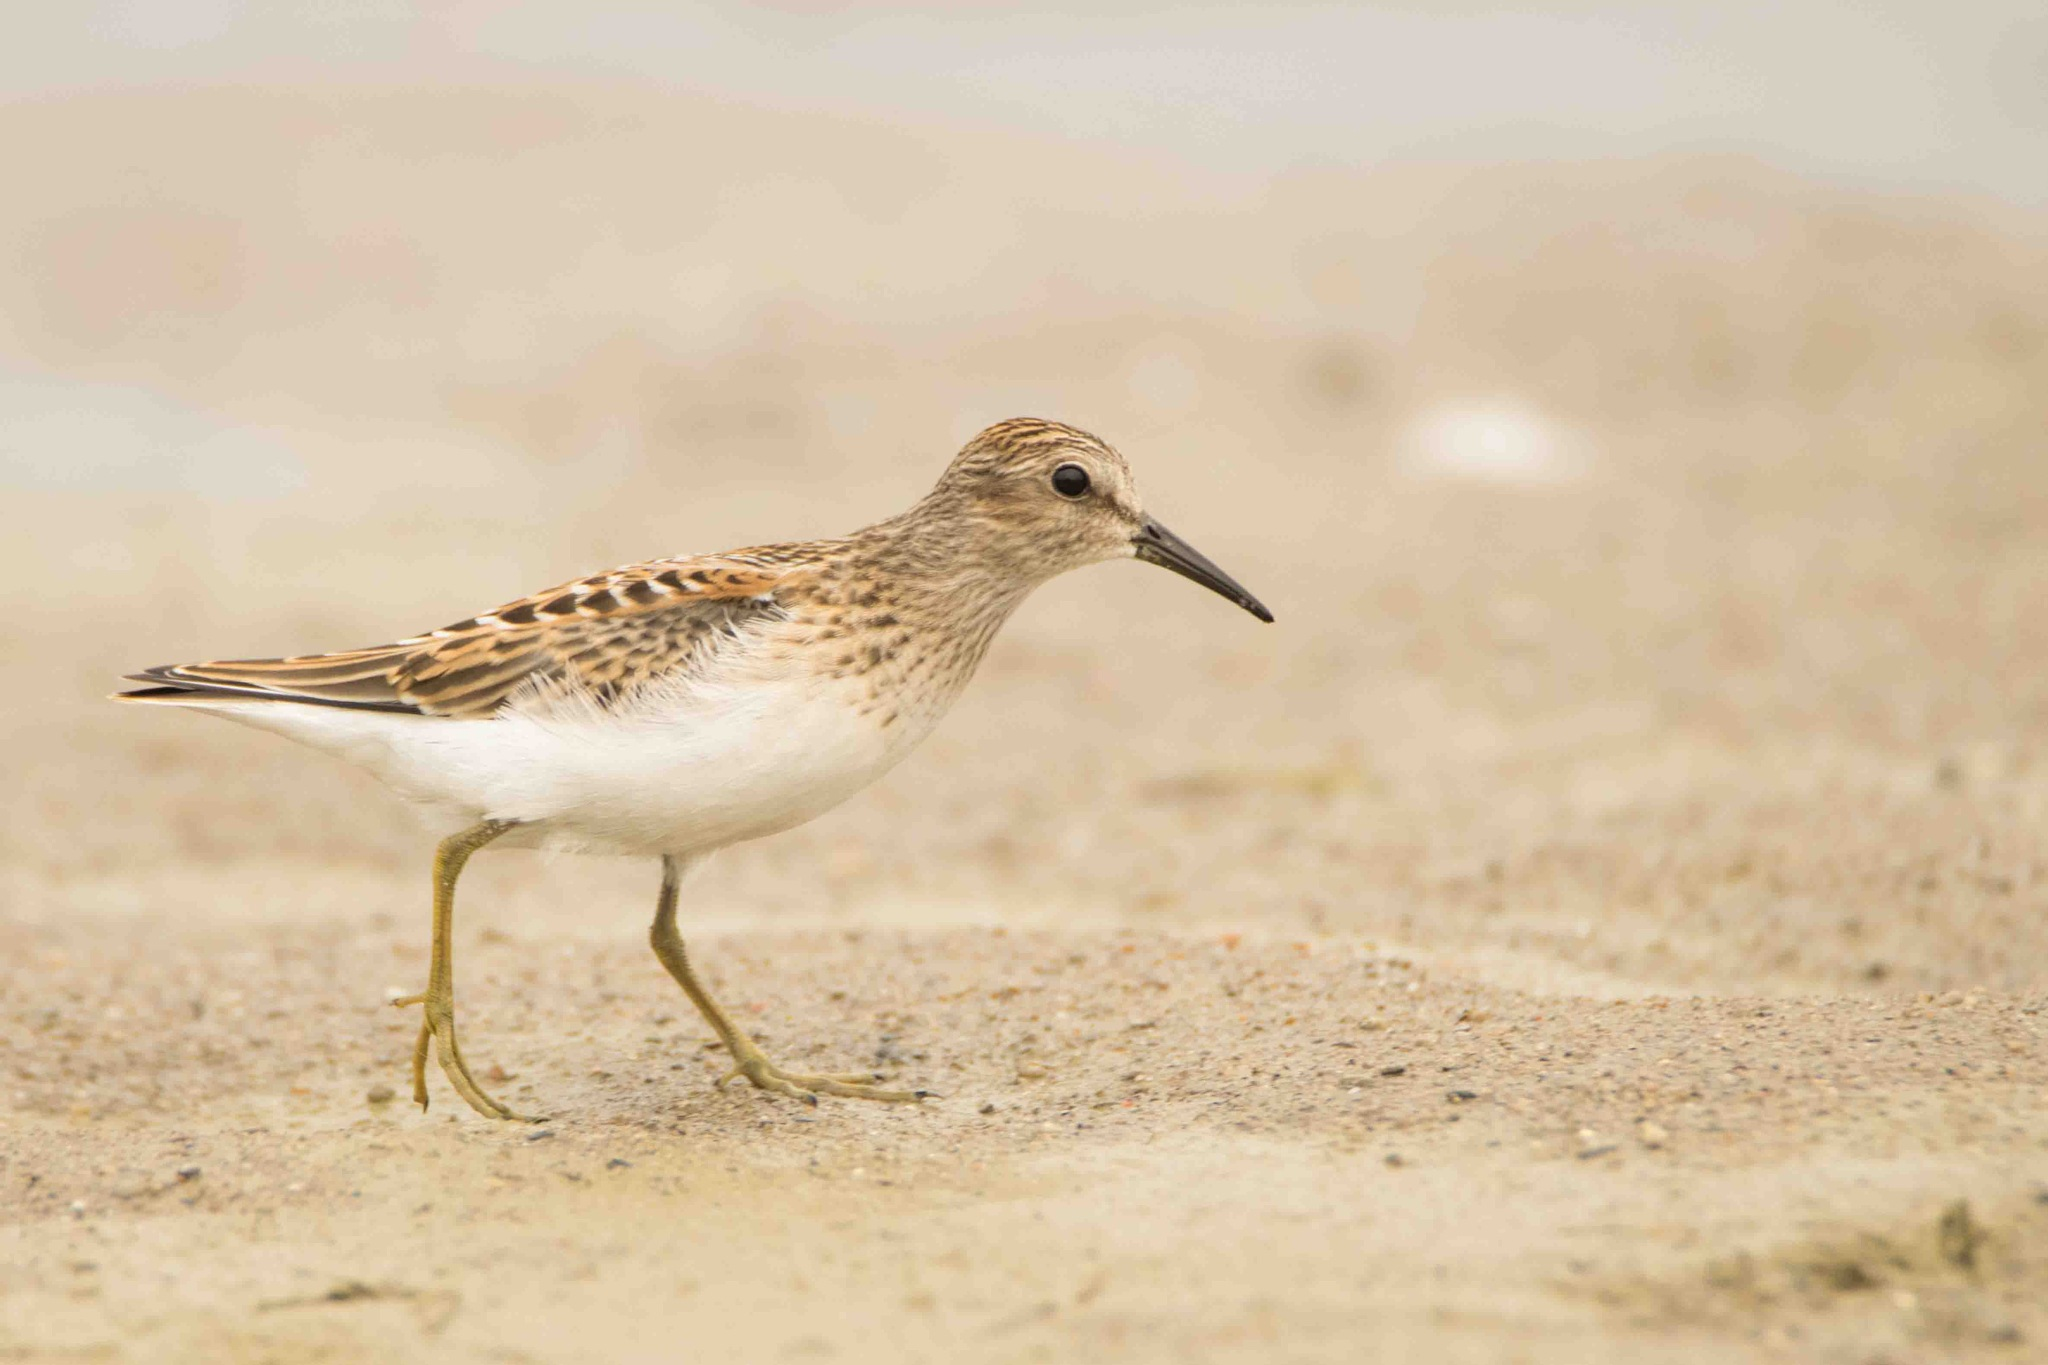 Least Sandpiper by Jack Farley